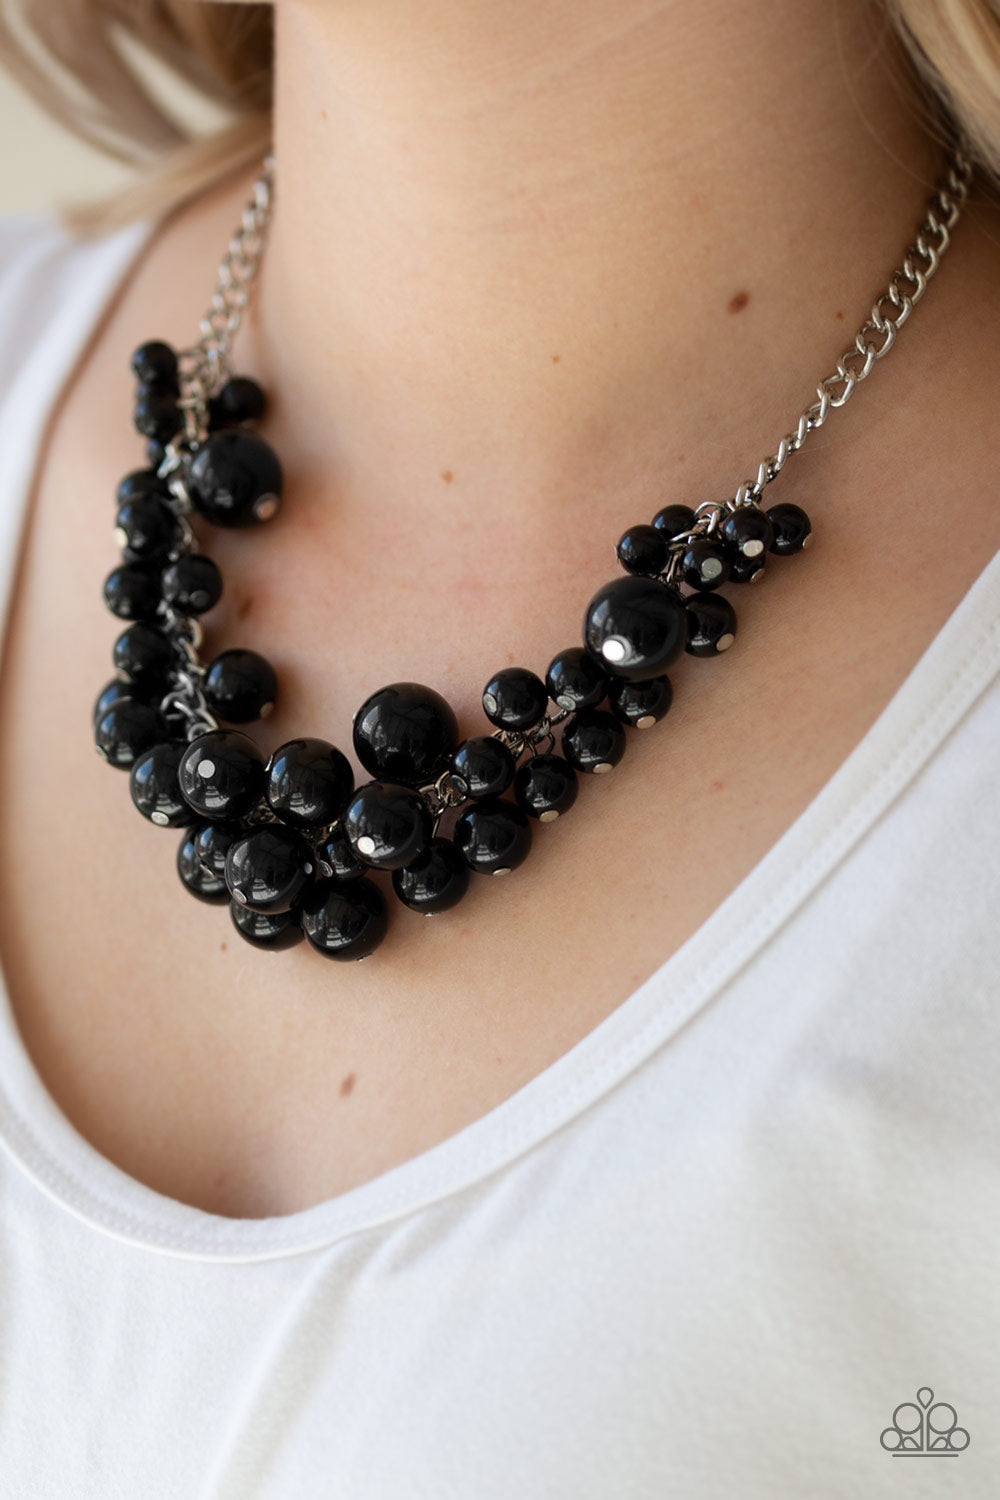 Paparazzi Accessories - Glam Queen - Black Necklace Set - JMJ Jewelry Collection